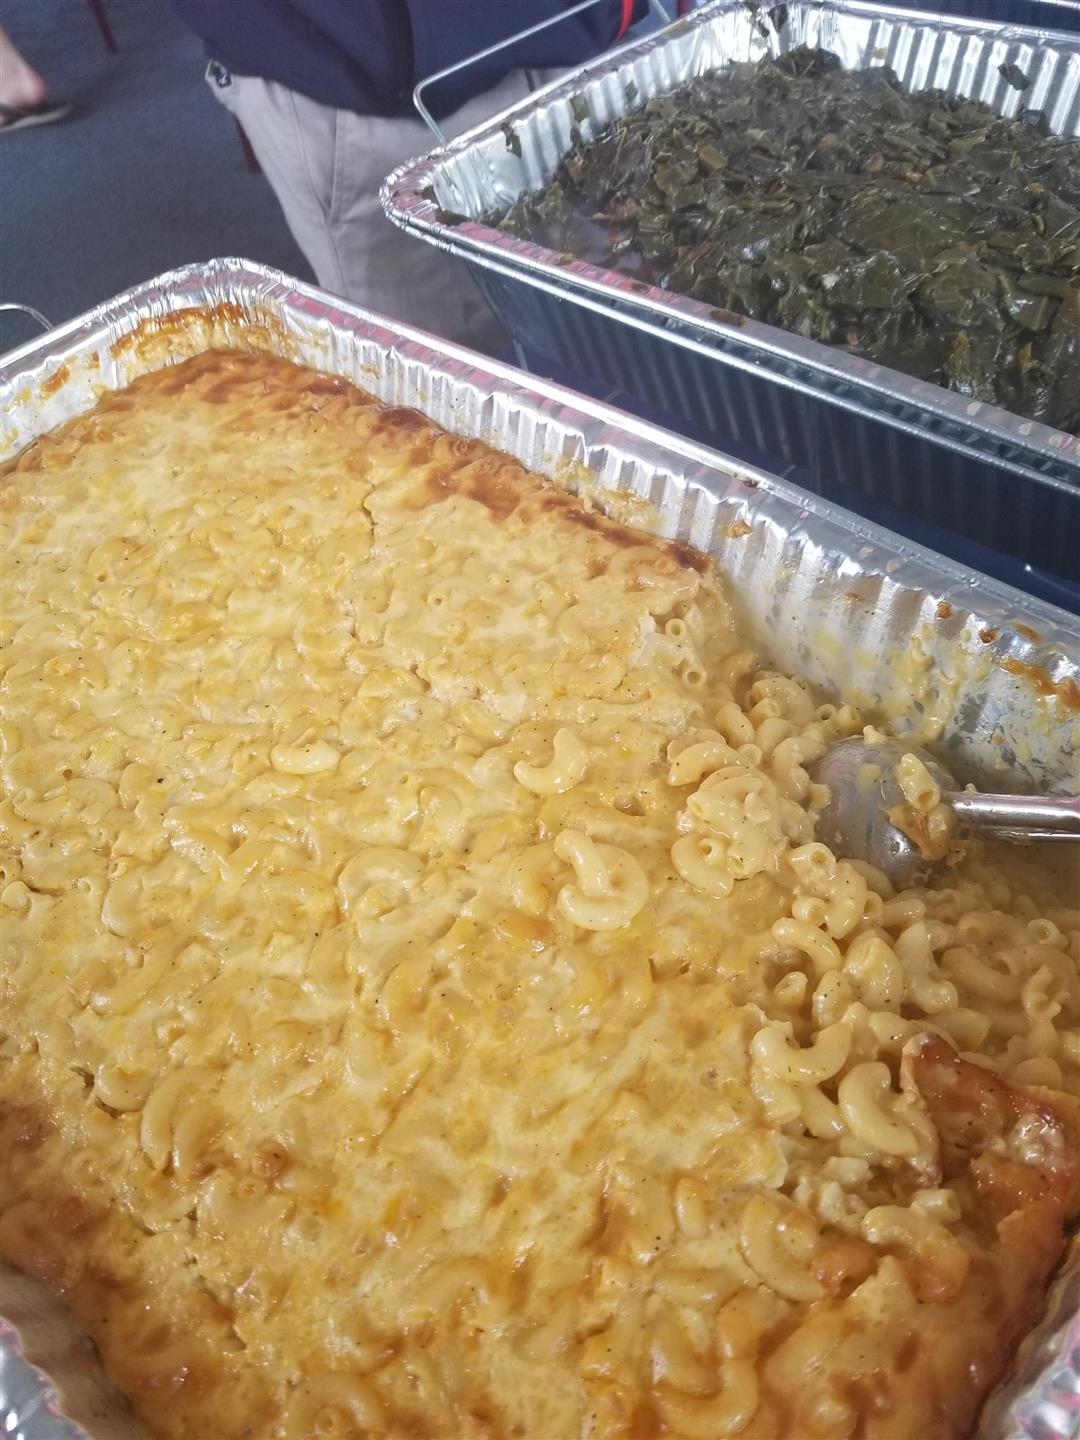 Mac and Cheese in a tray with a serving spoon in it